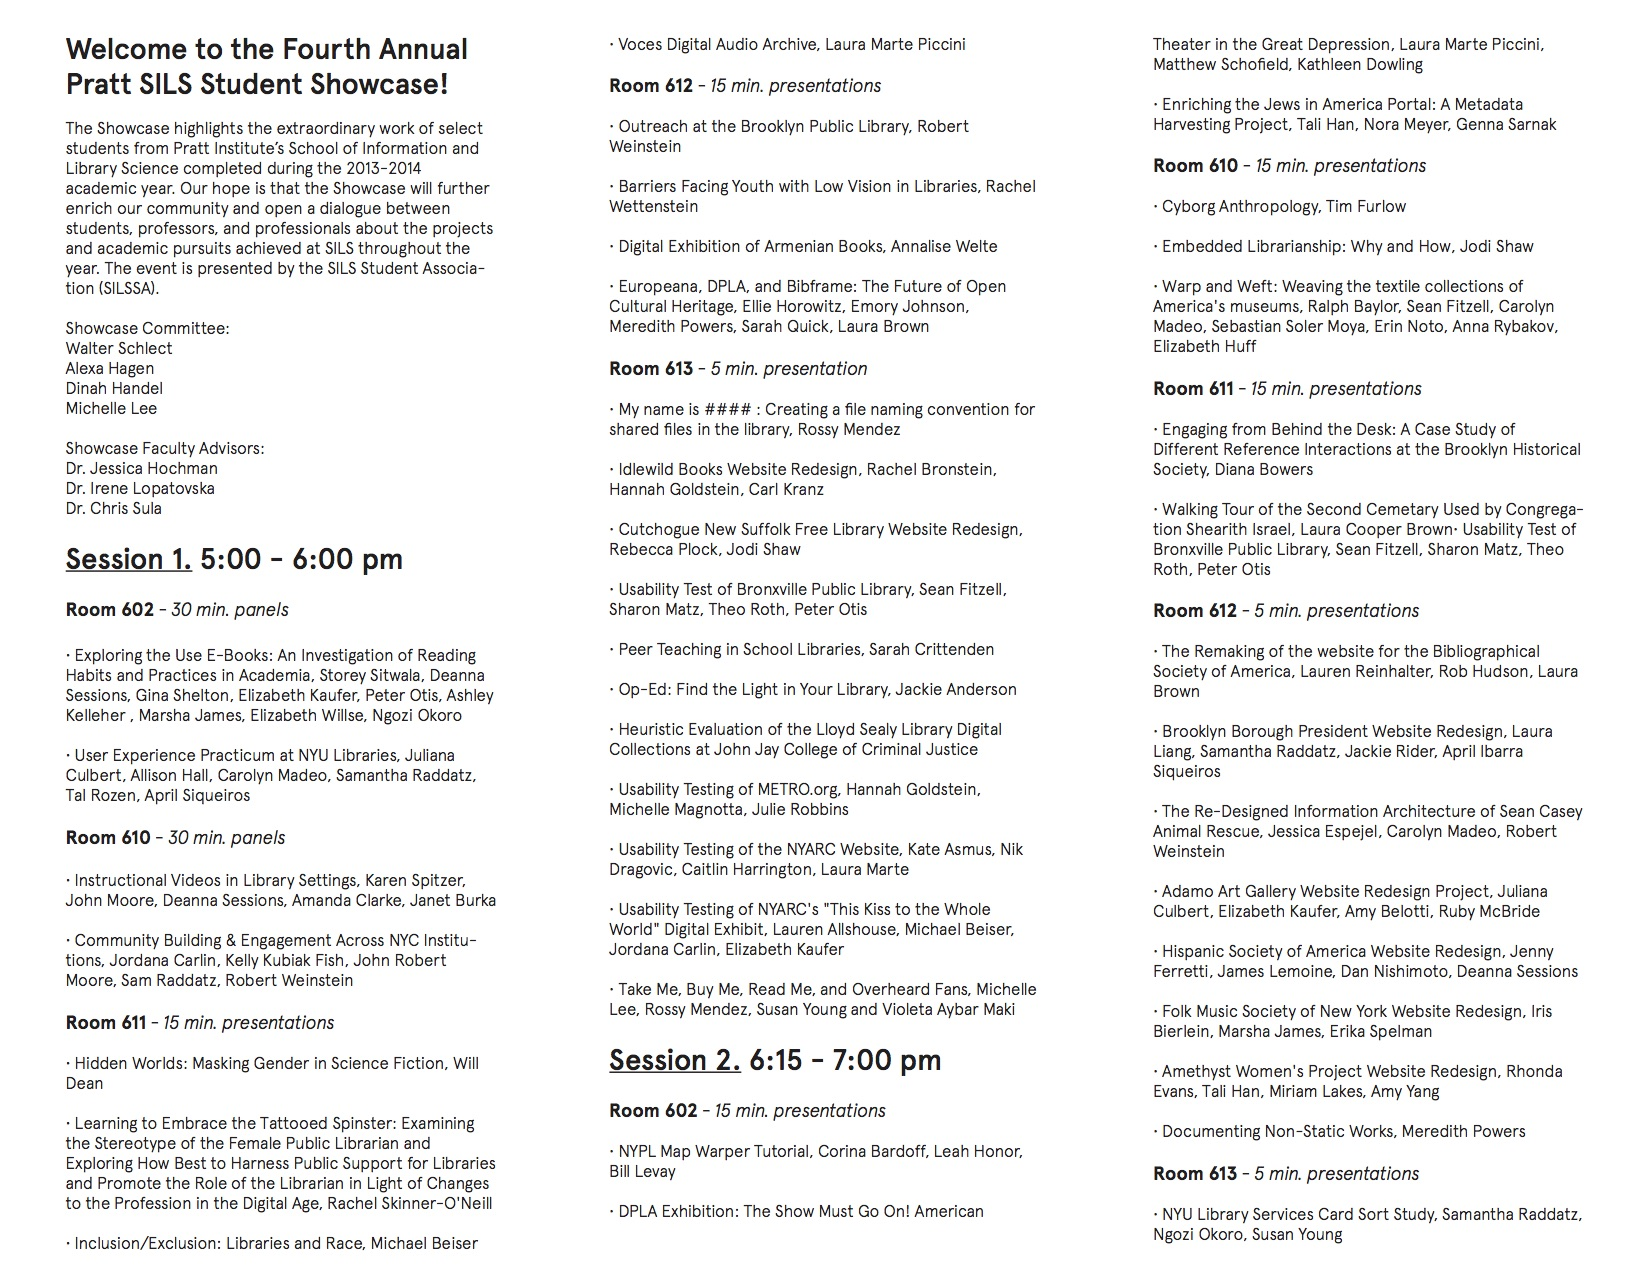 PrattSILSShowcase14Program (1)